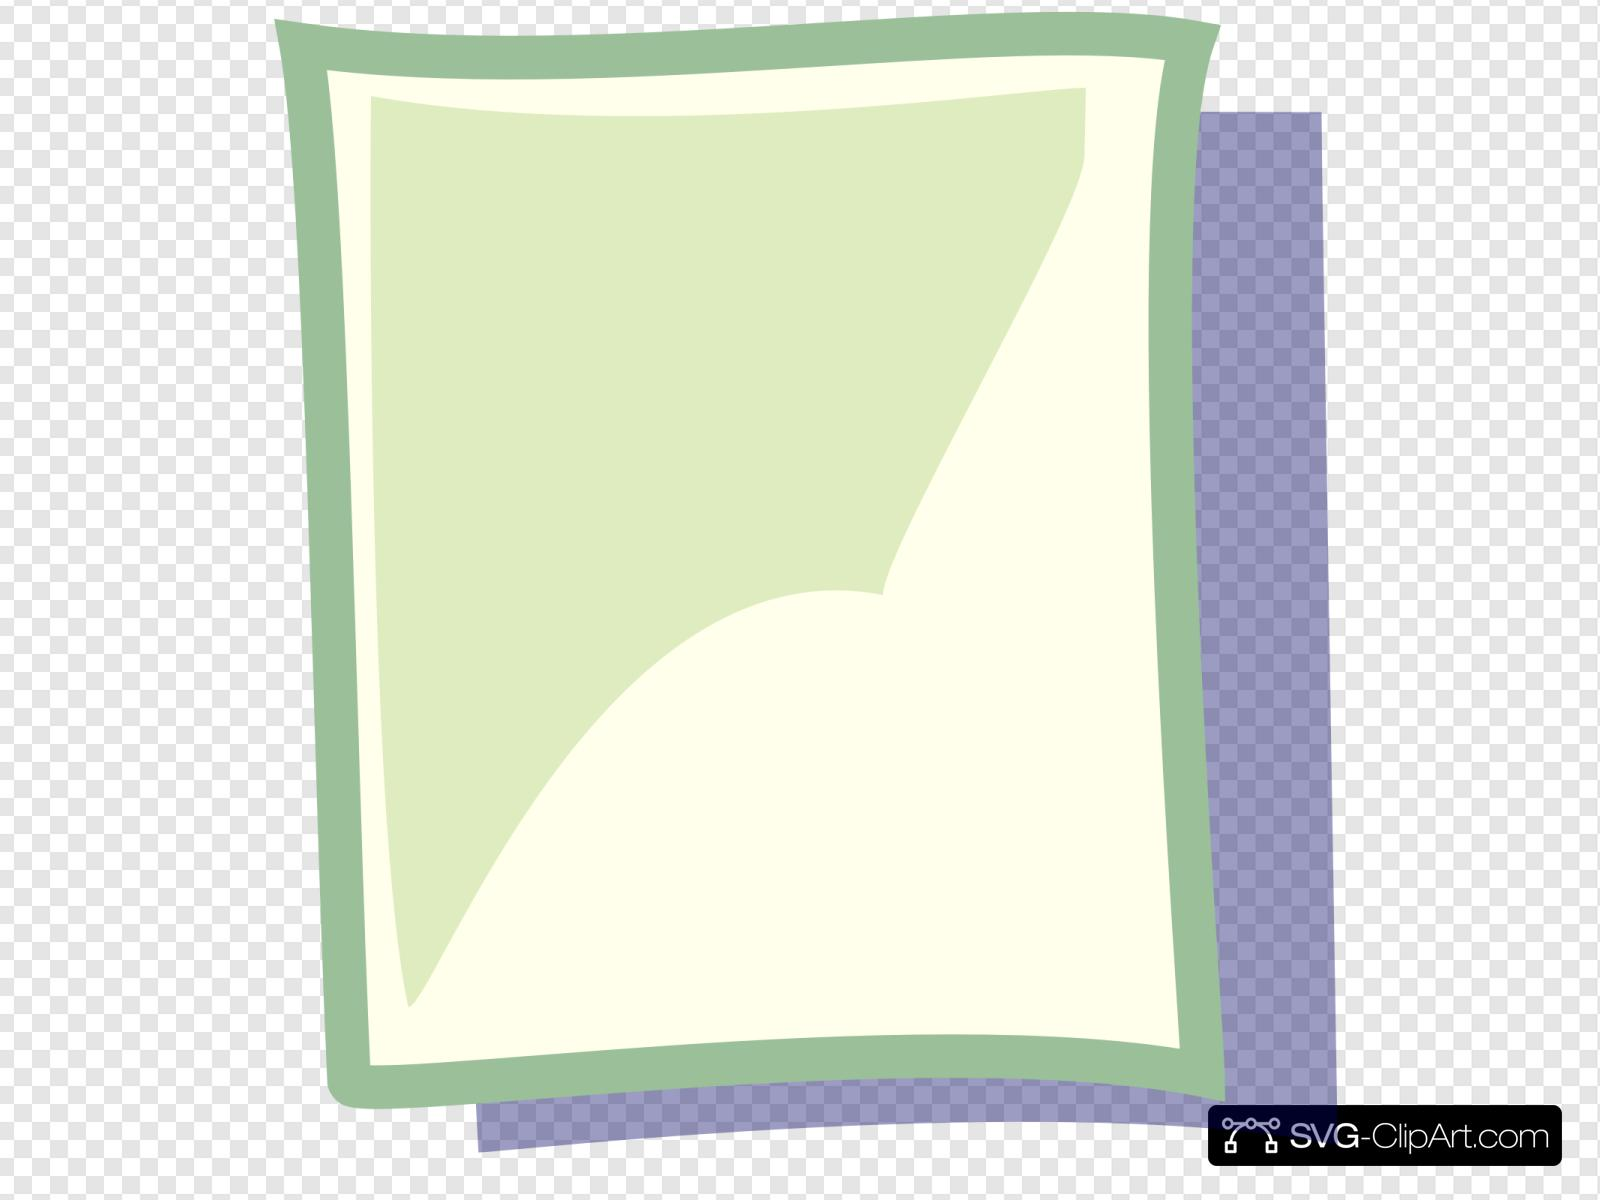 Blank Page Clip art, Icon and SVG.